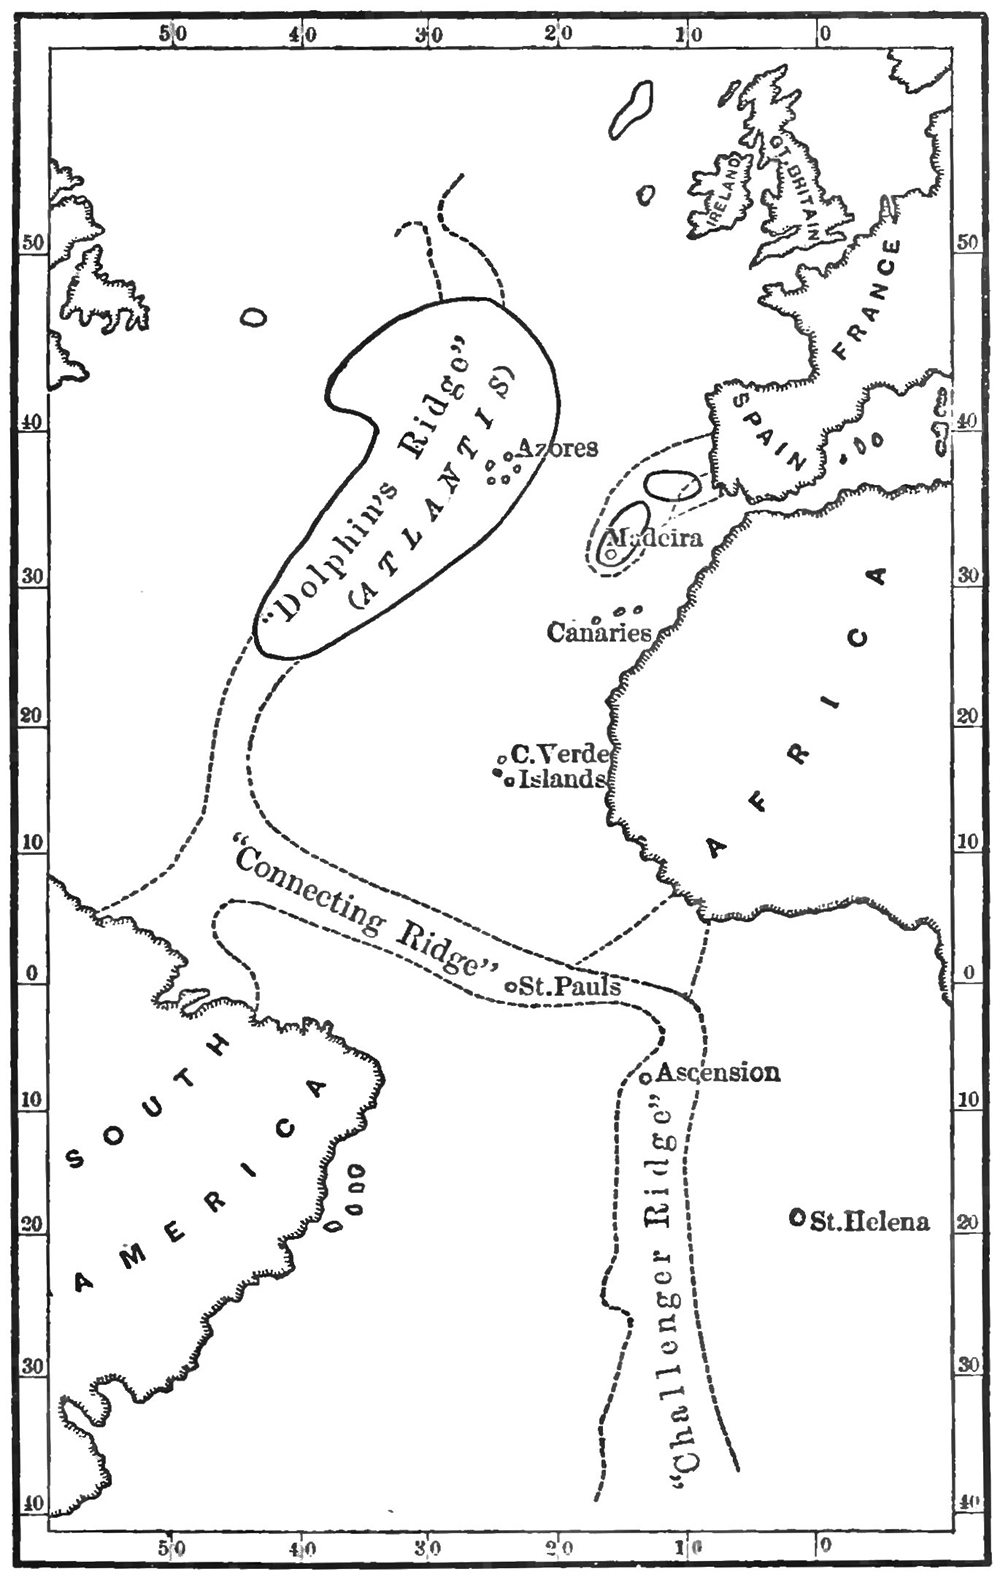 Map of Atlantis, with its islands and connecting ridges, from deep-sea soundings, from Atlantis: The Antediluvian World (1882) by Ignatius Donnelly.